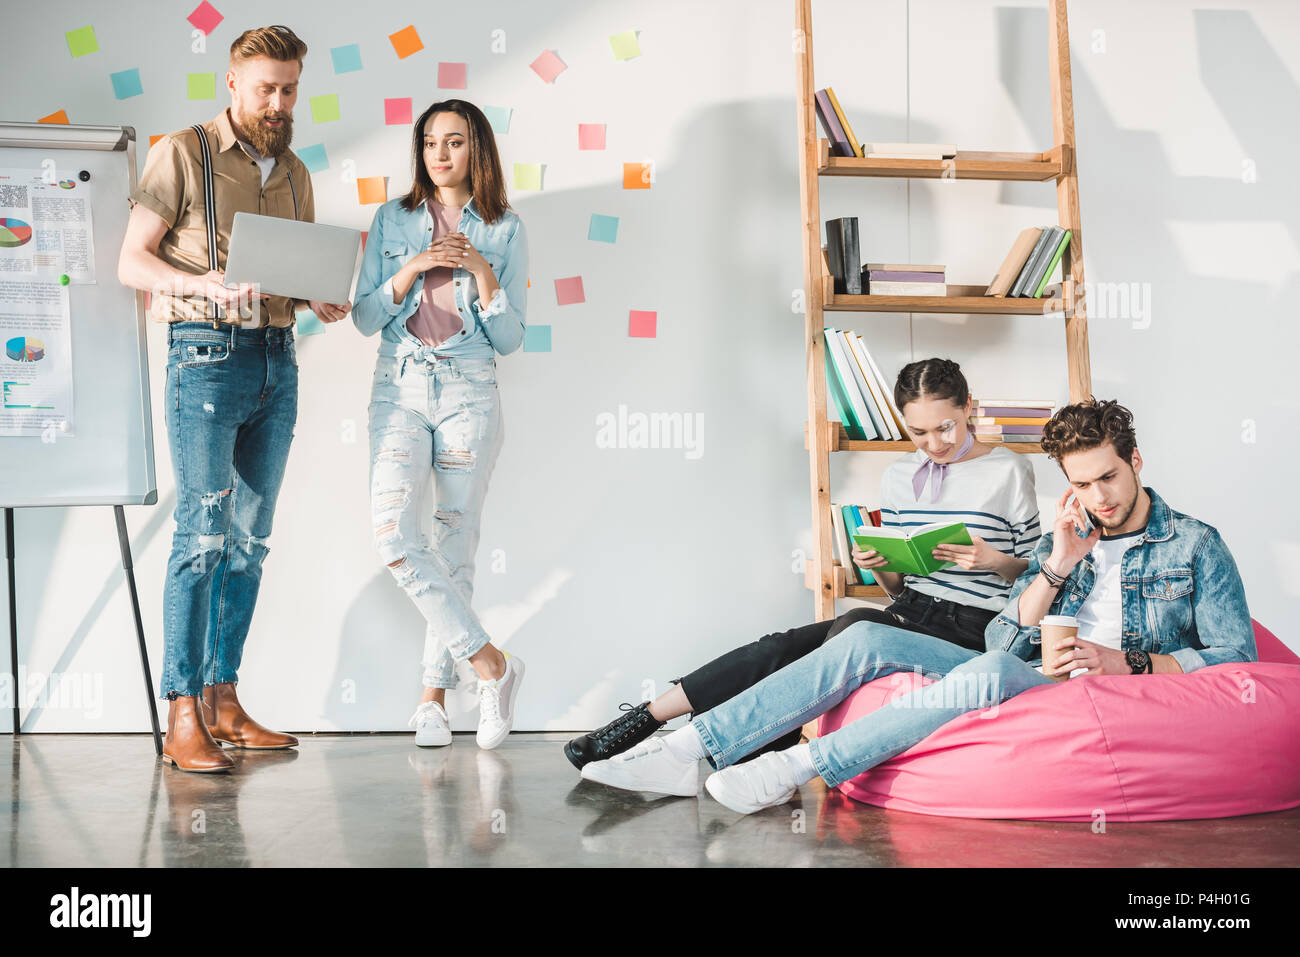 Professional business colleagues men and women during new ideas researching in modern office - Stock Image